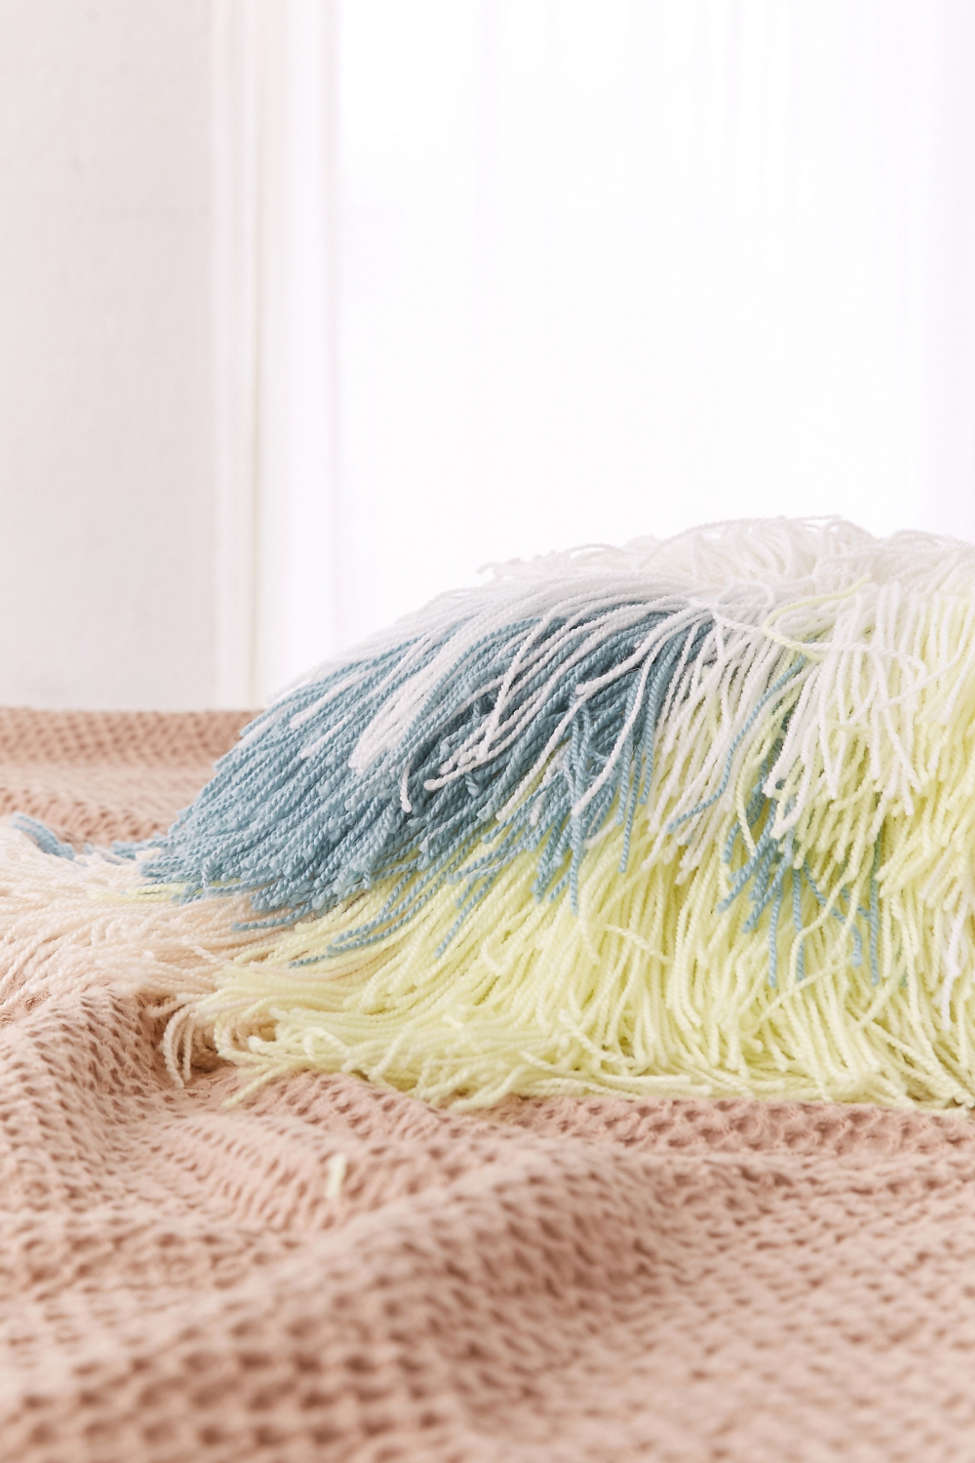 Slide View: 3: Round Shaggy Pastel Pillow